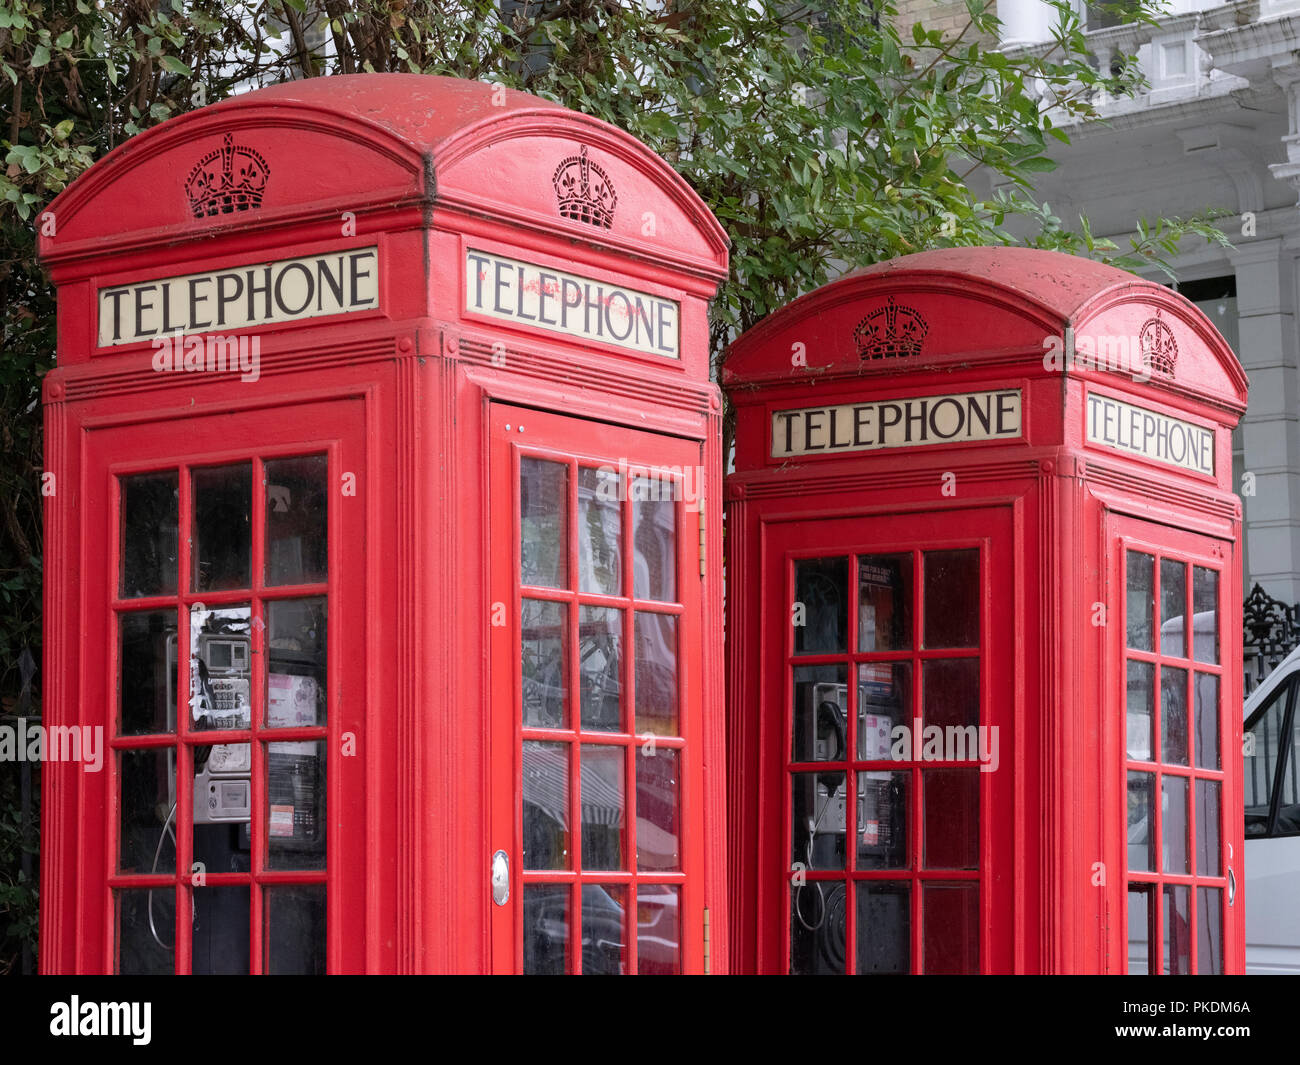 A pair of K2 red telephone boxes, the original design by Sir Giles Gilbert Scott in Regent's Park - Stock Image